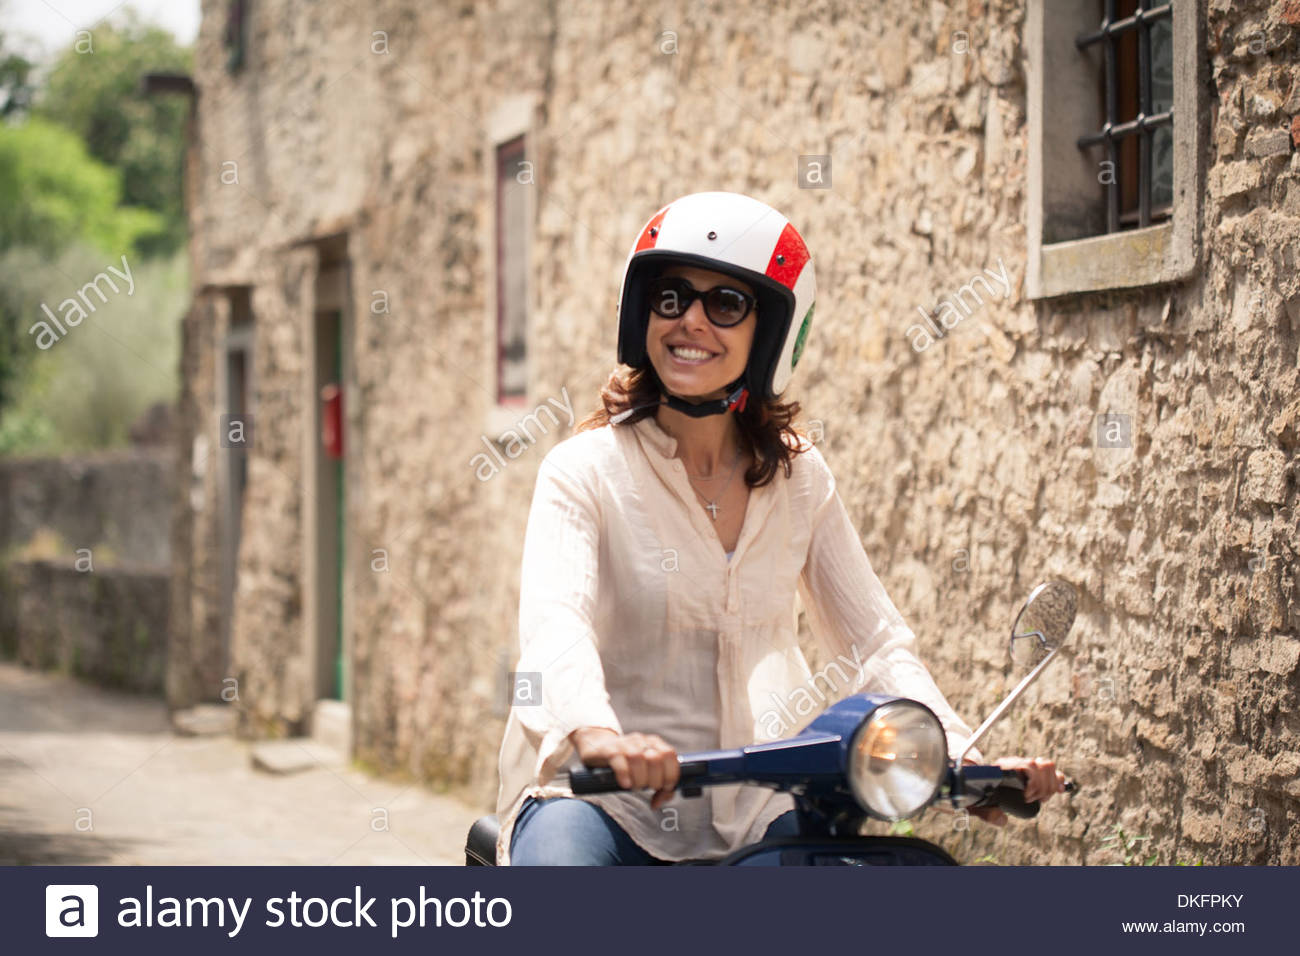 Woman exploring Florence on moped, Italy - Stock Image